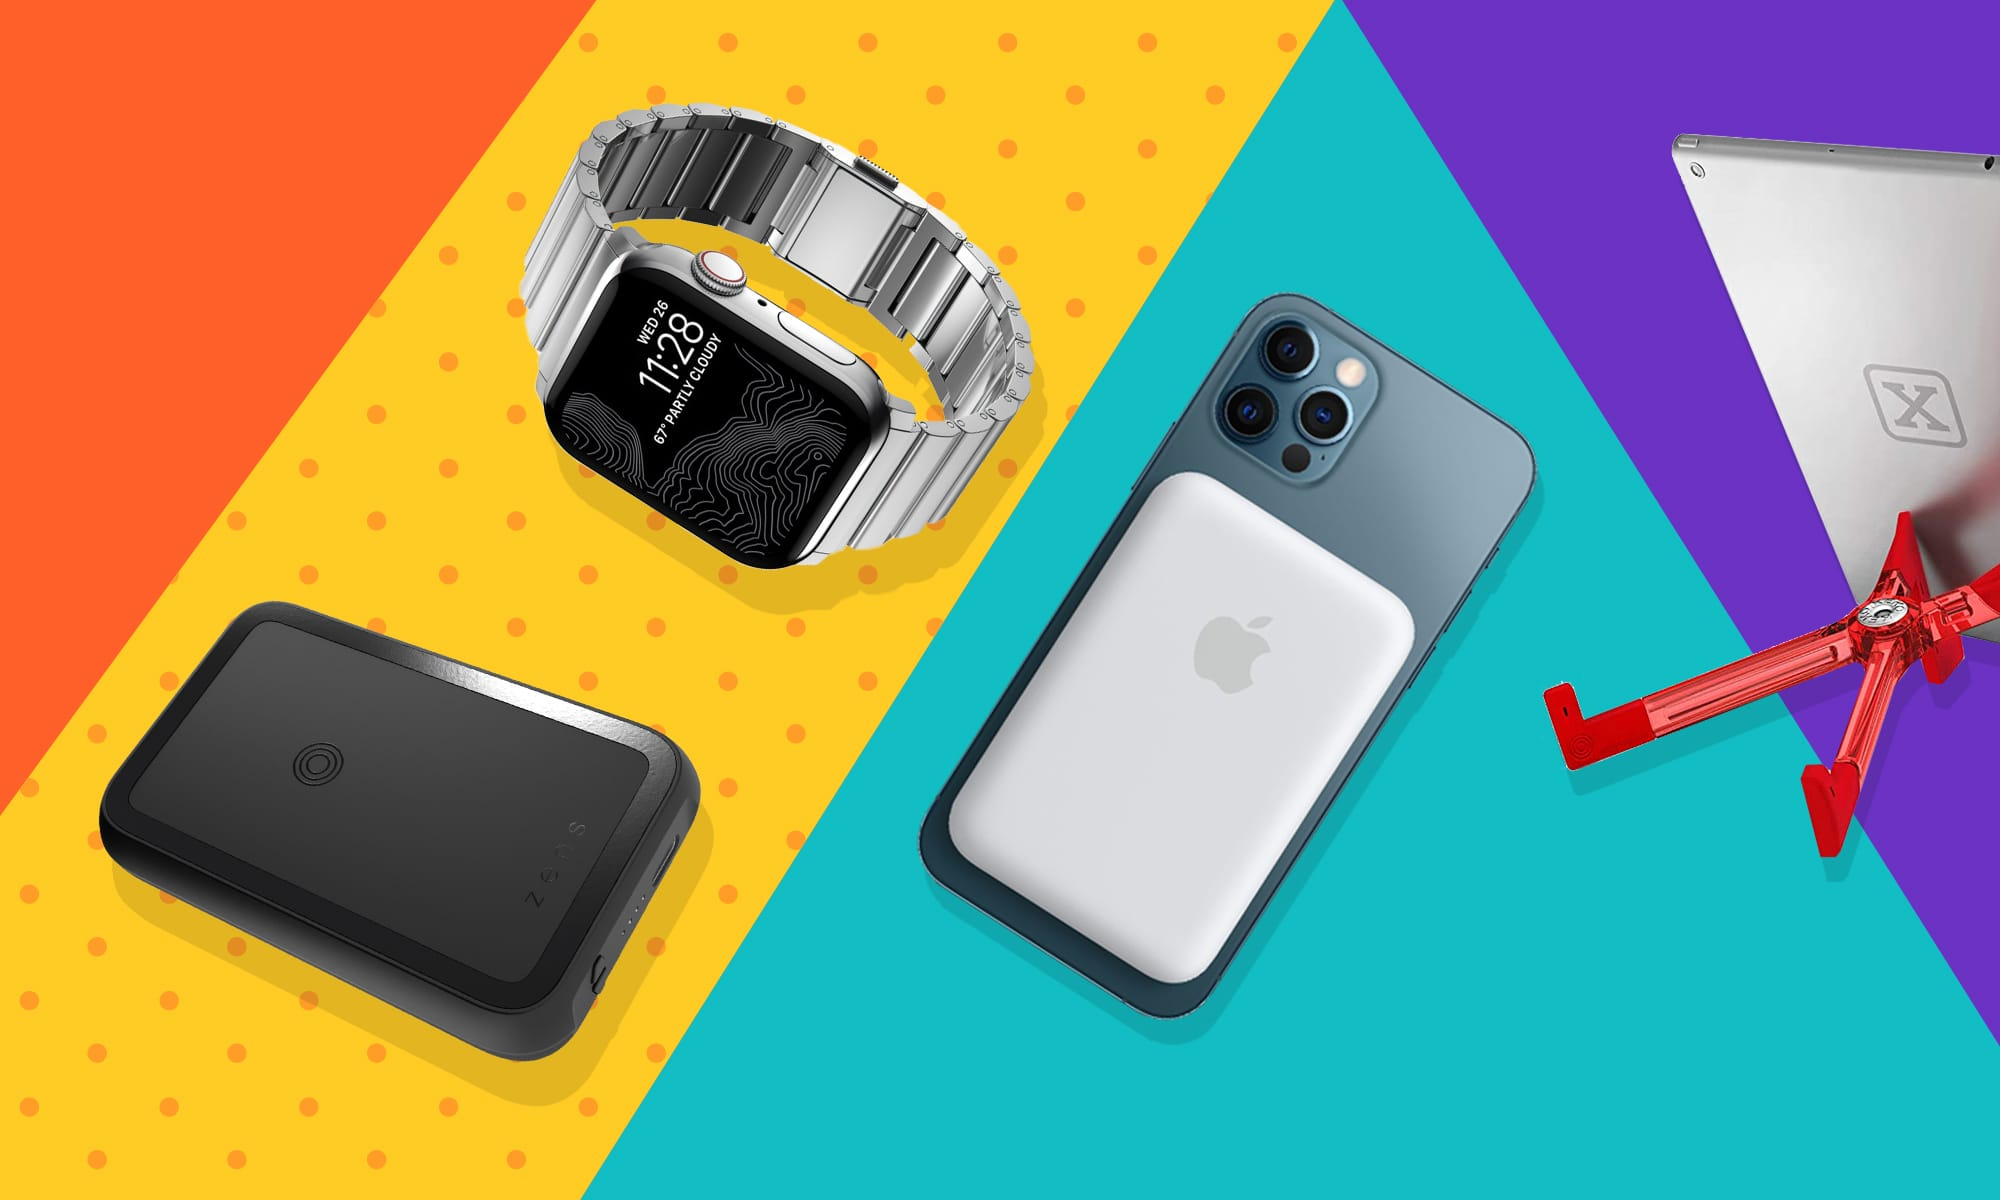 Best Apple gadgets and accessories by Gadget Flow - July edition